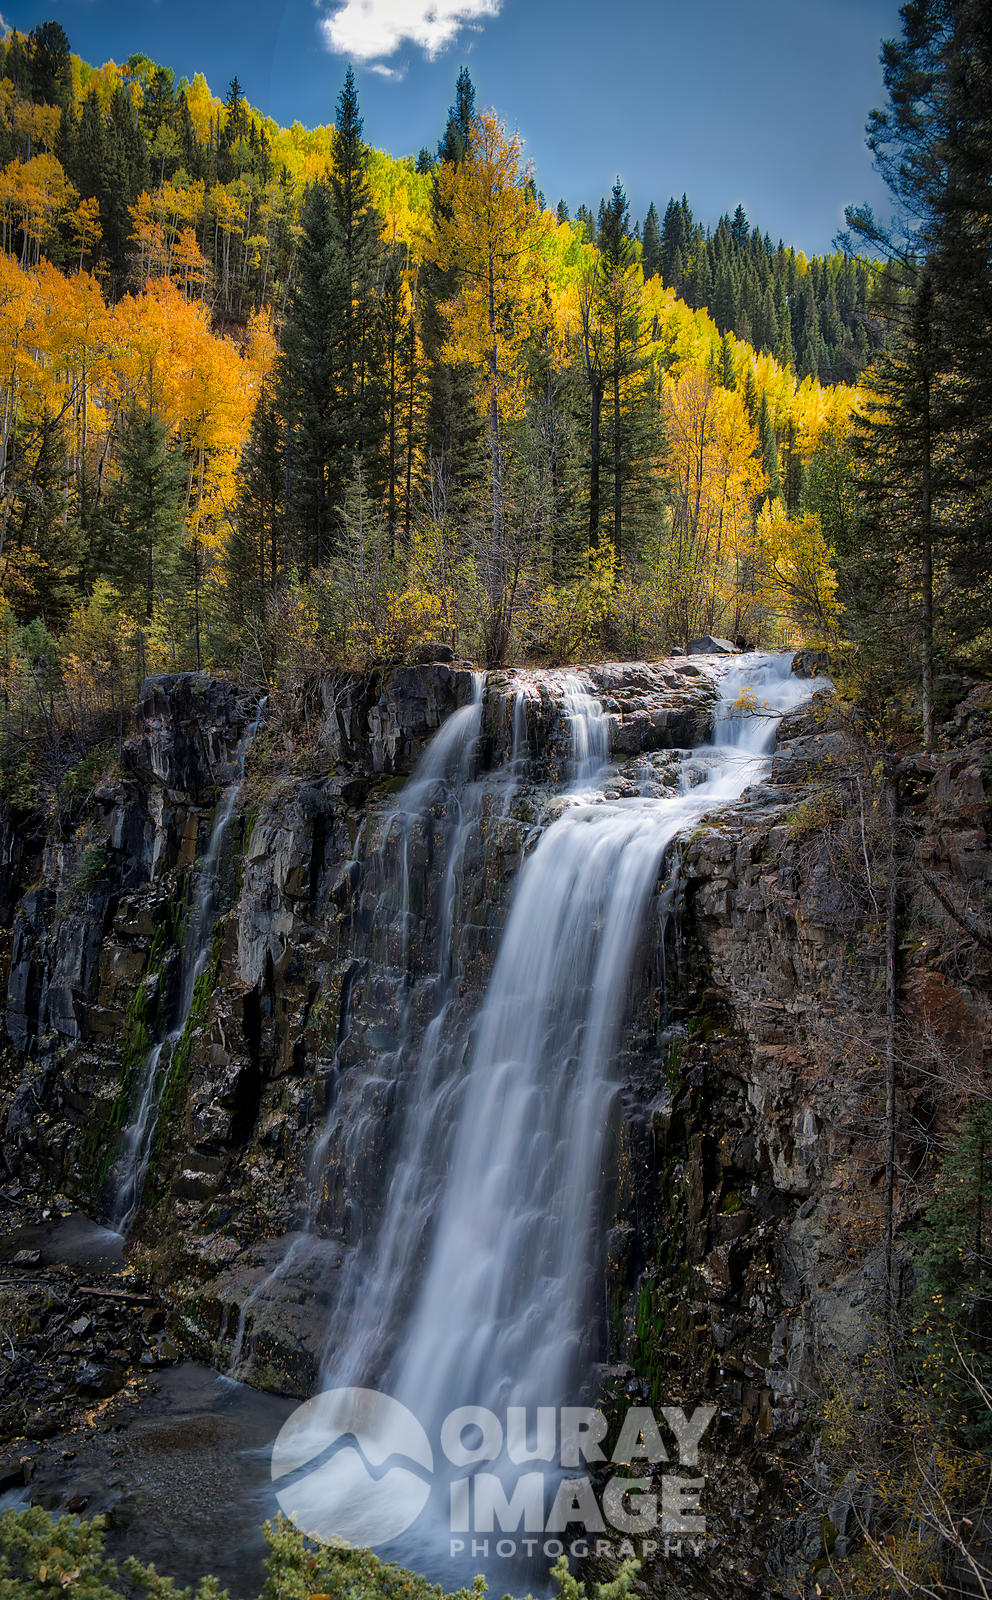 Waterfall near Telluride